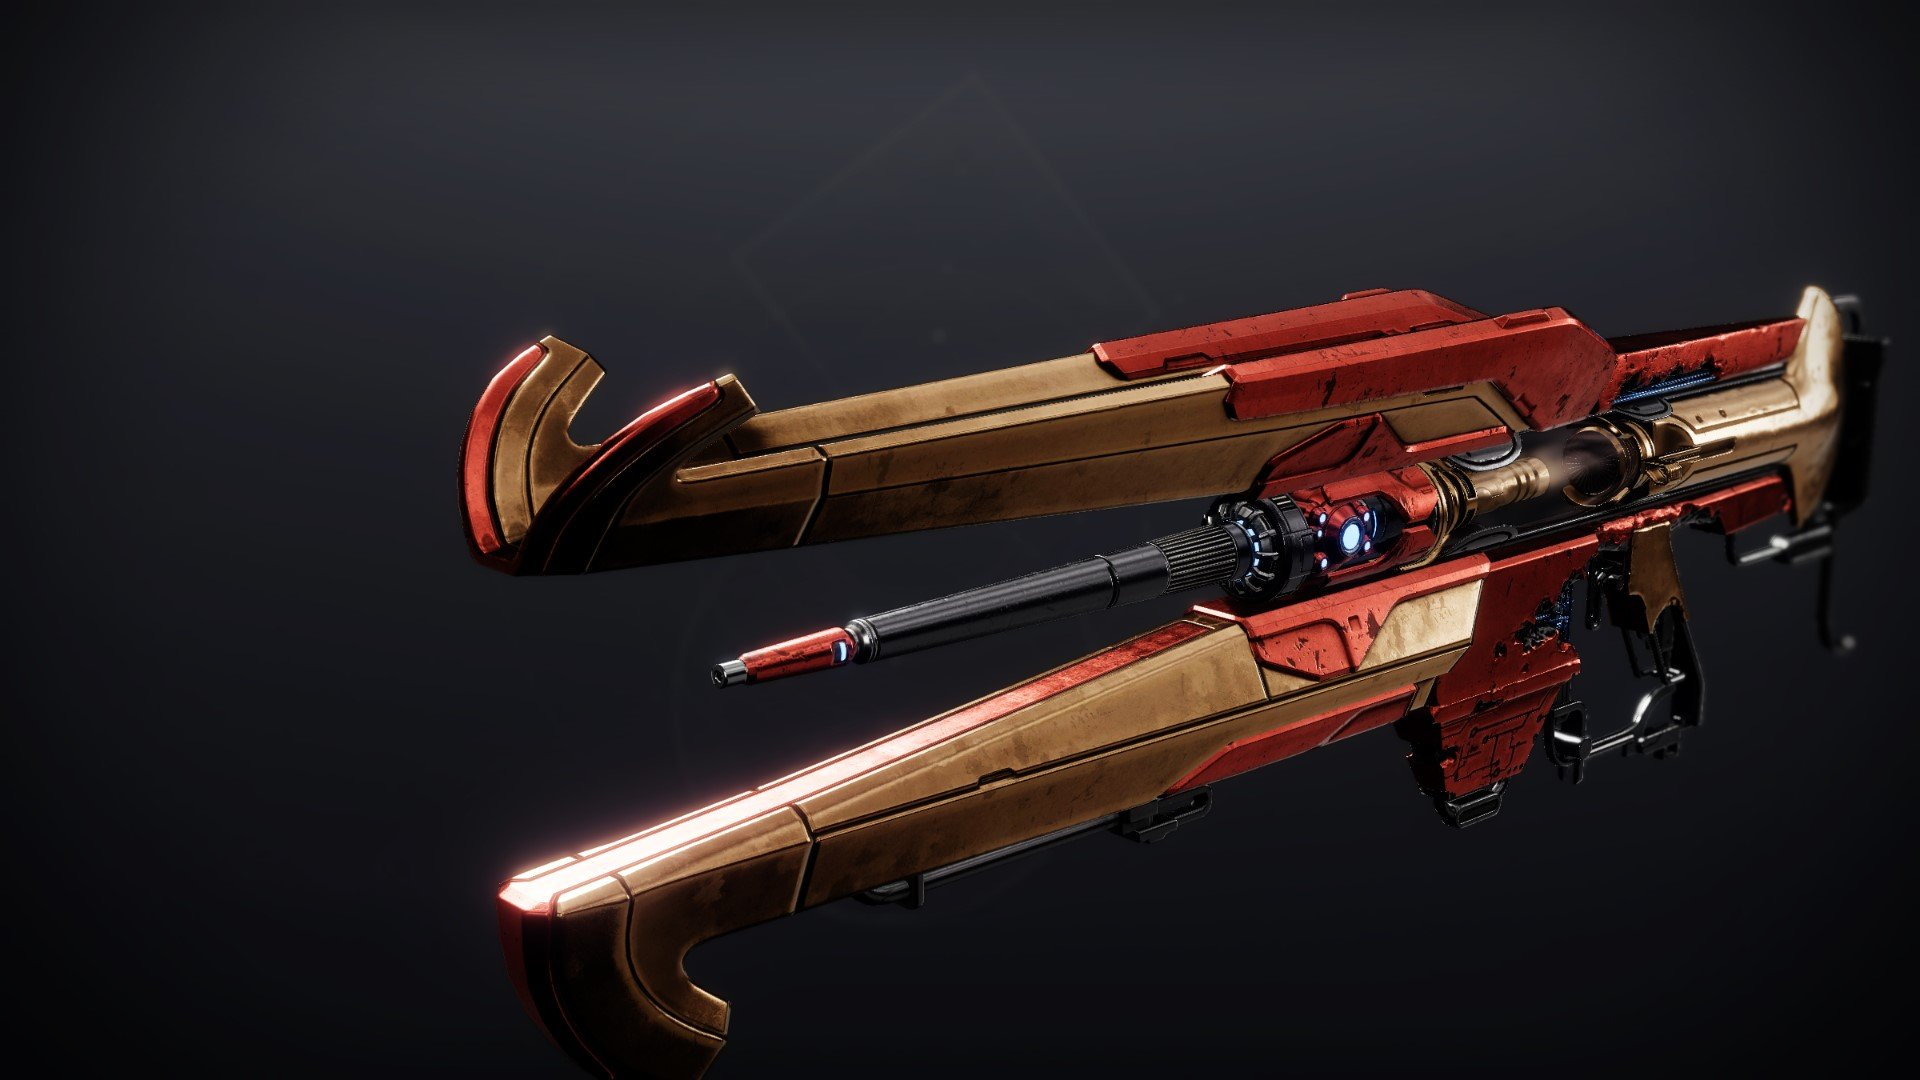 An in-game render of the Atropos.